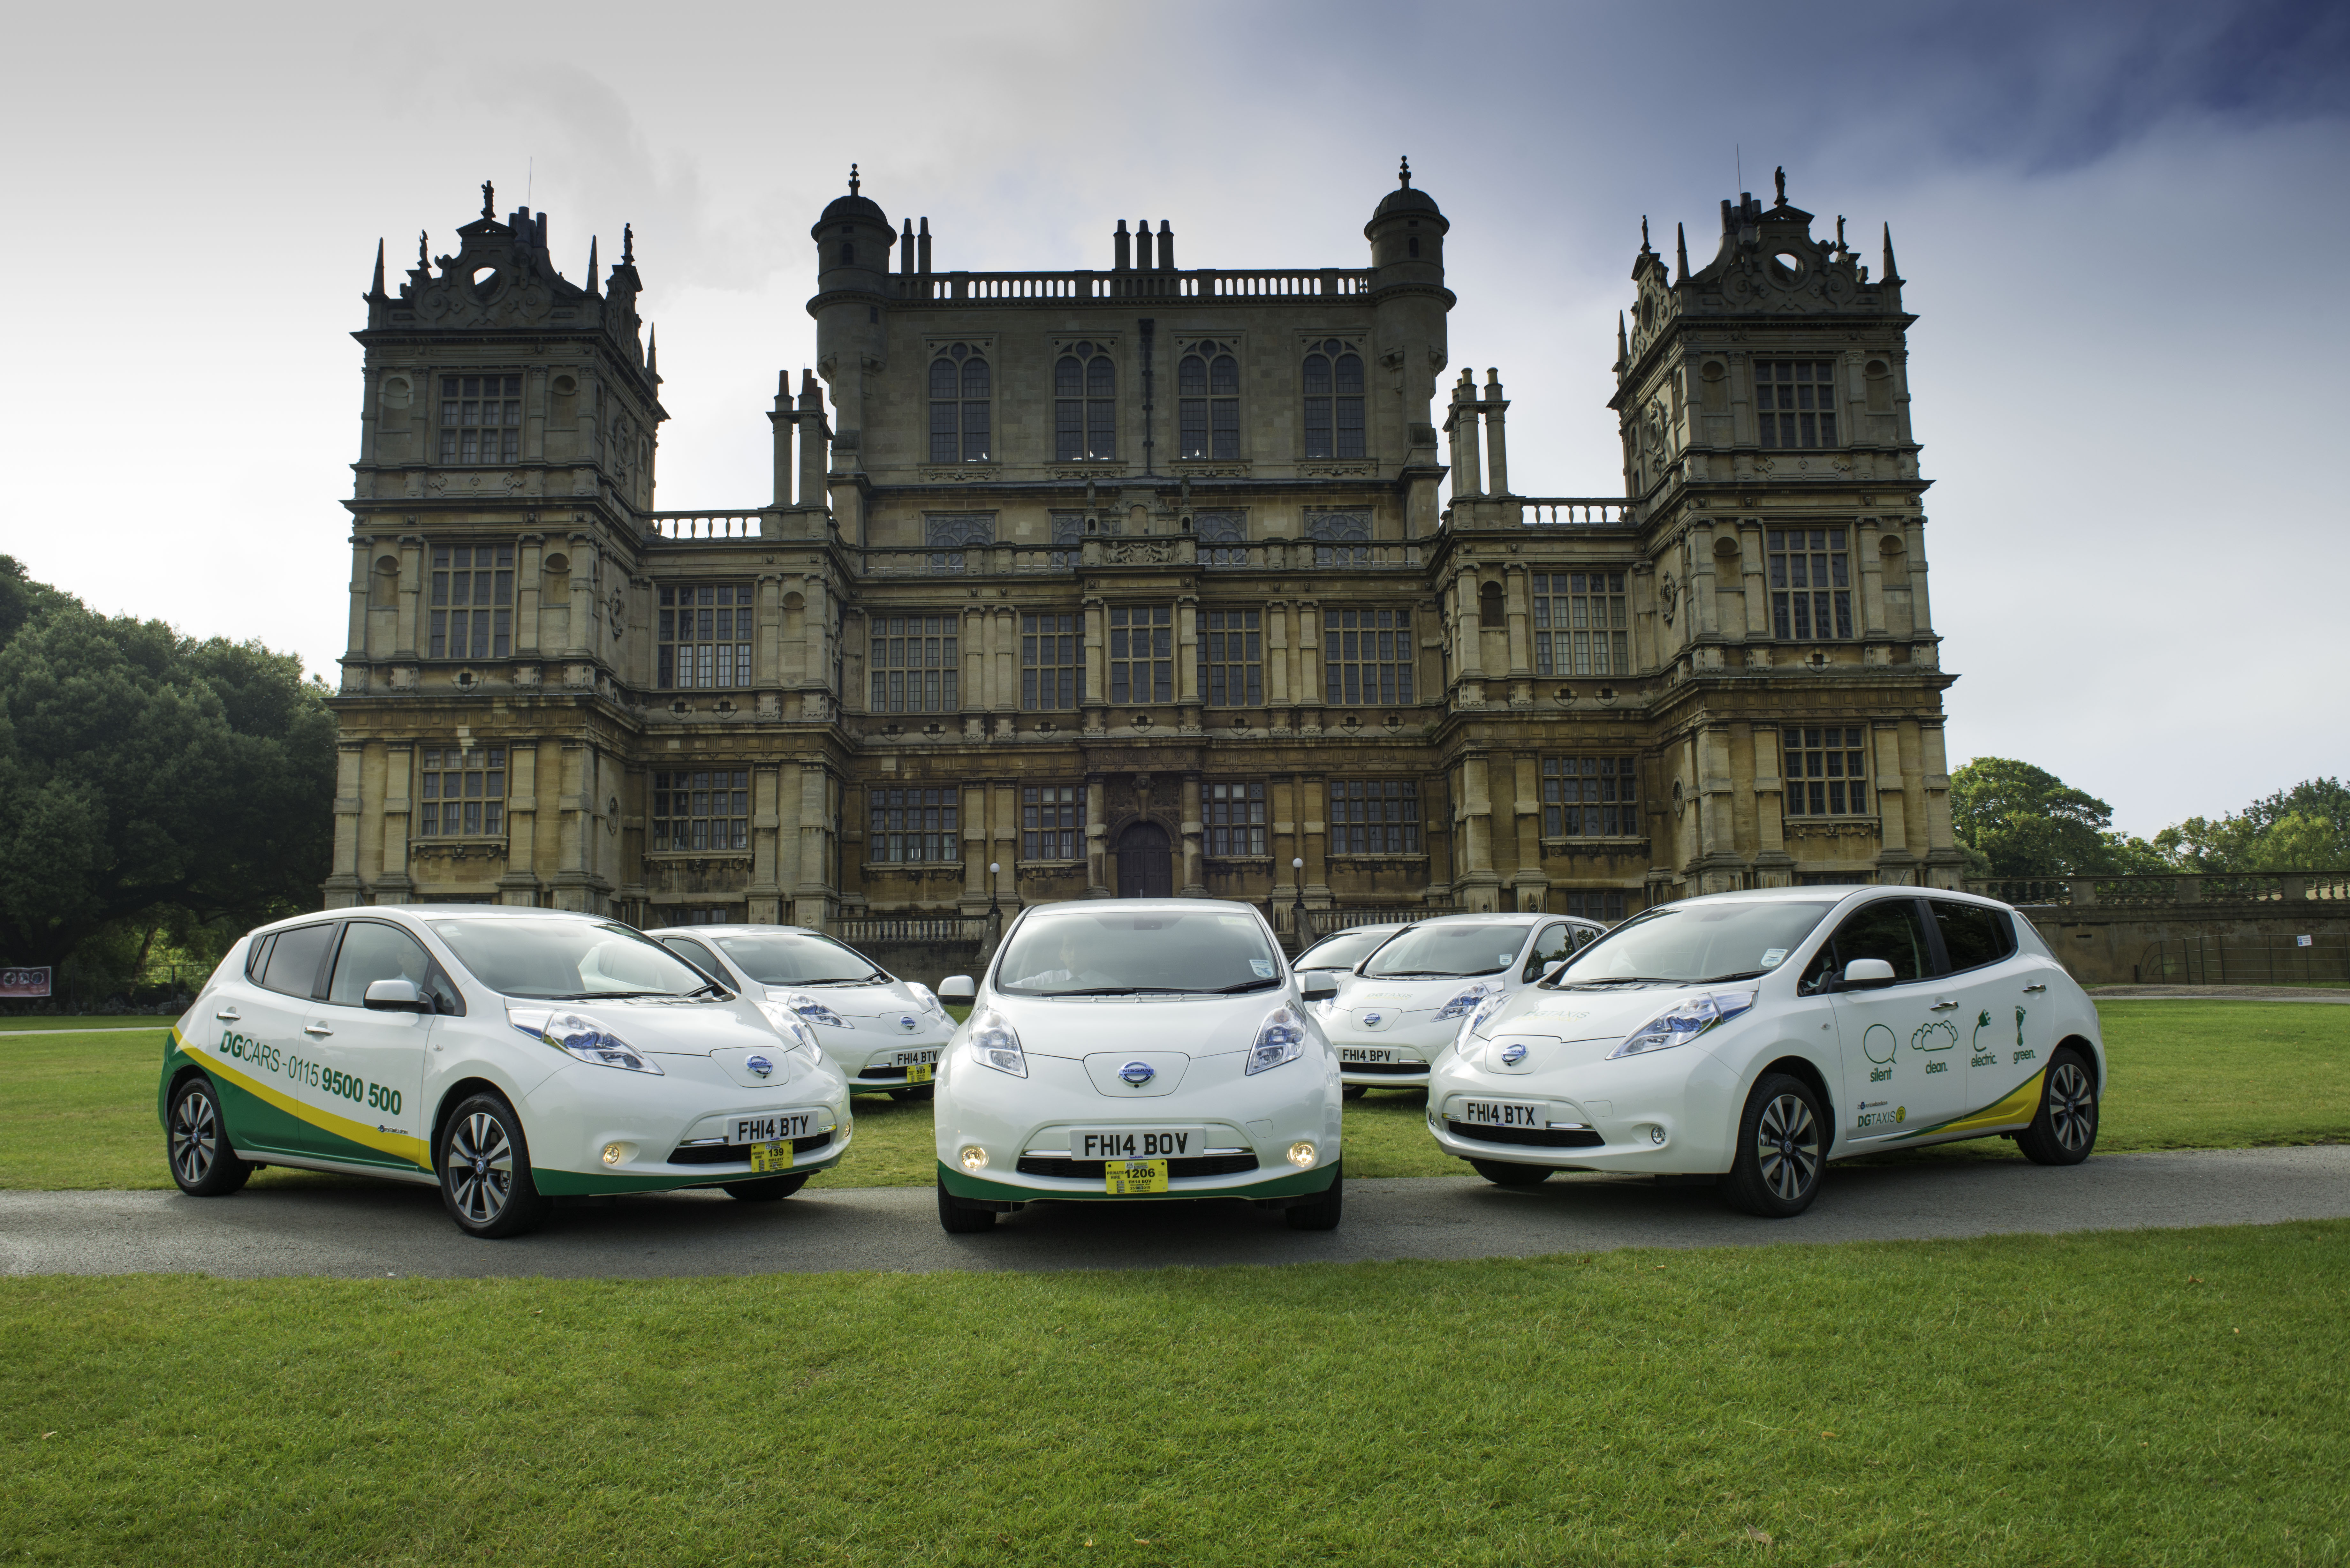 More Electric Taxis in Nottingham for DG Cars